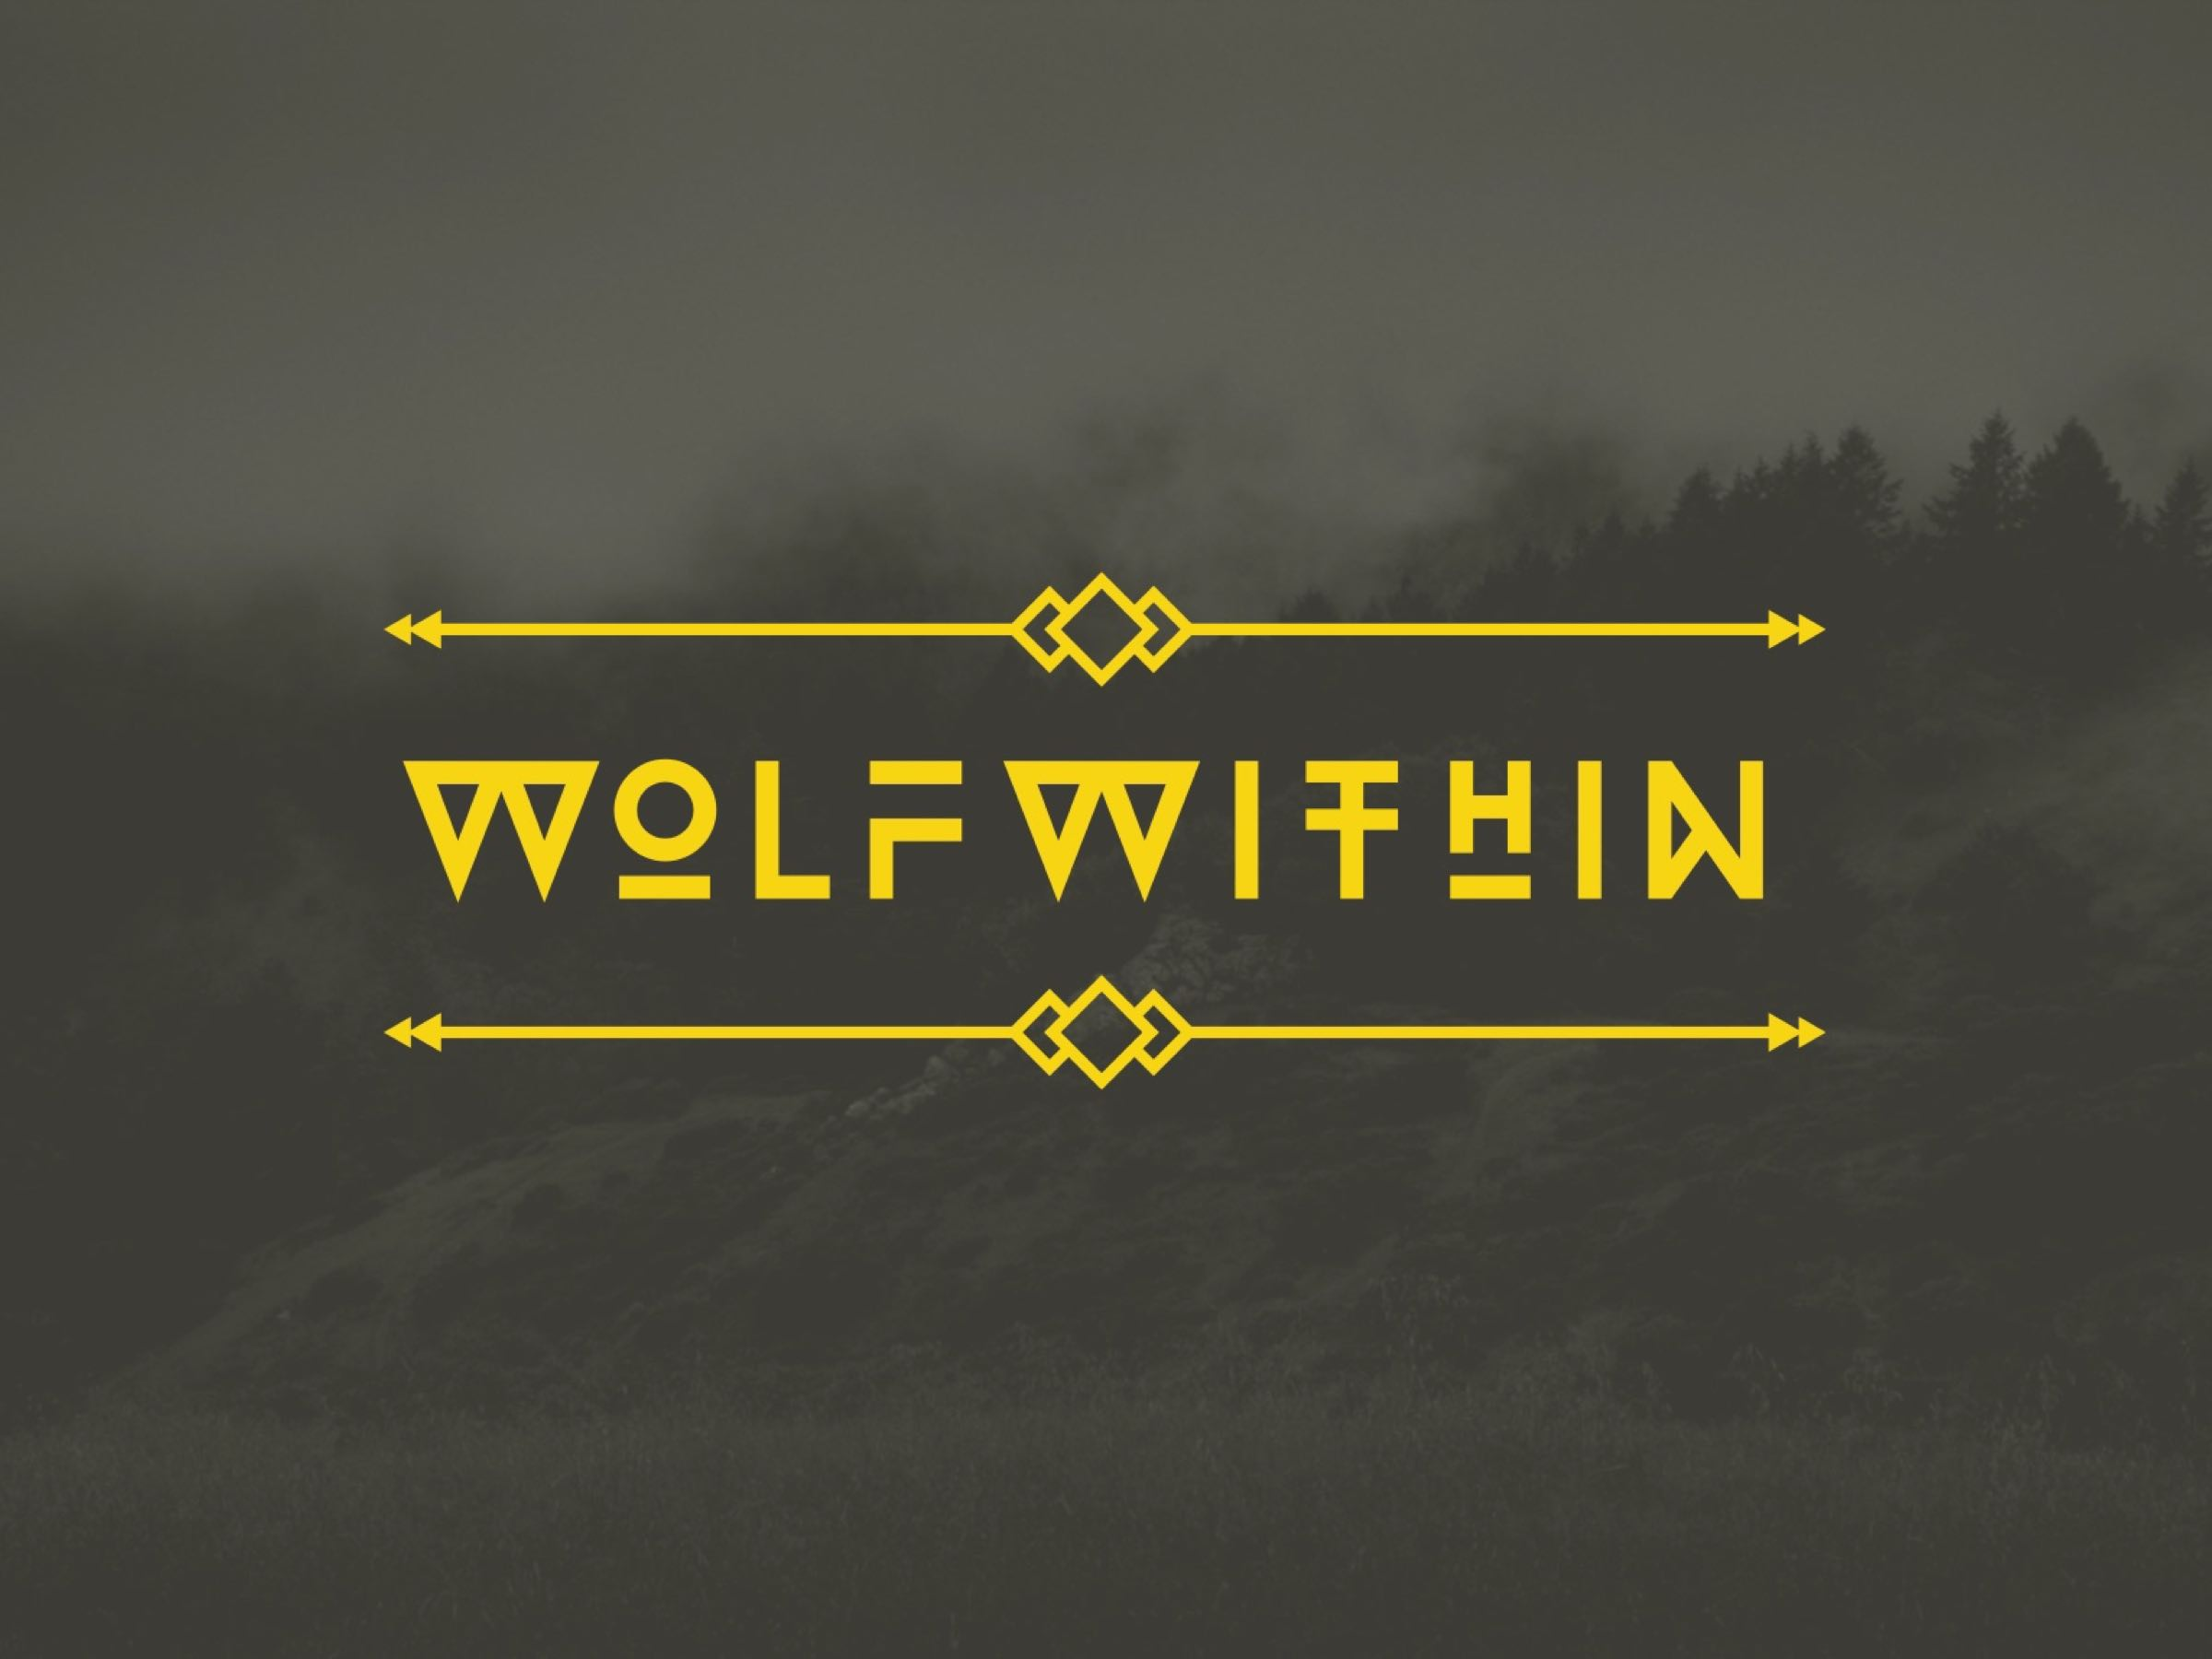 Wolfwithin wordmark